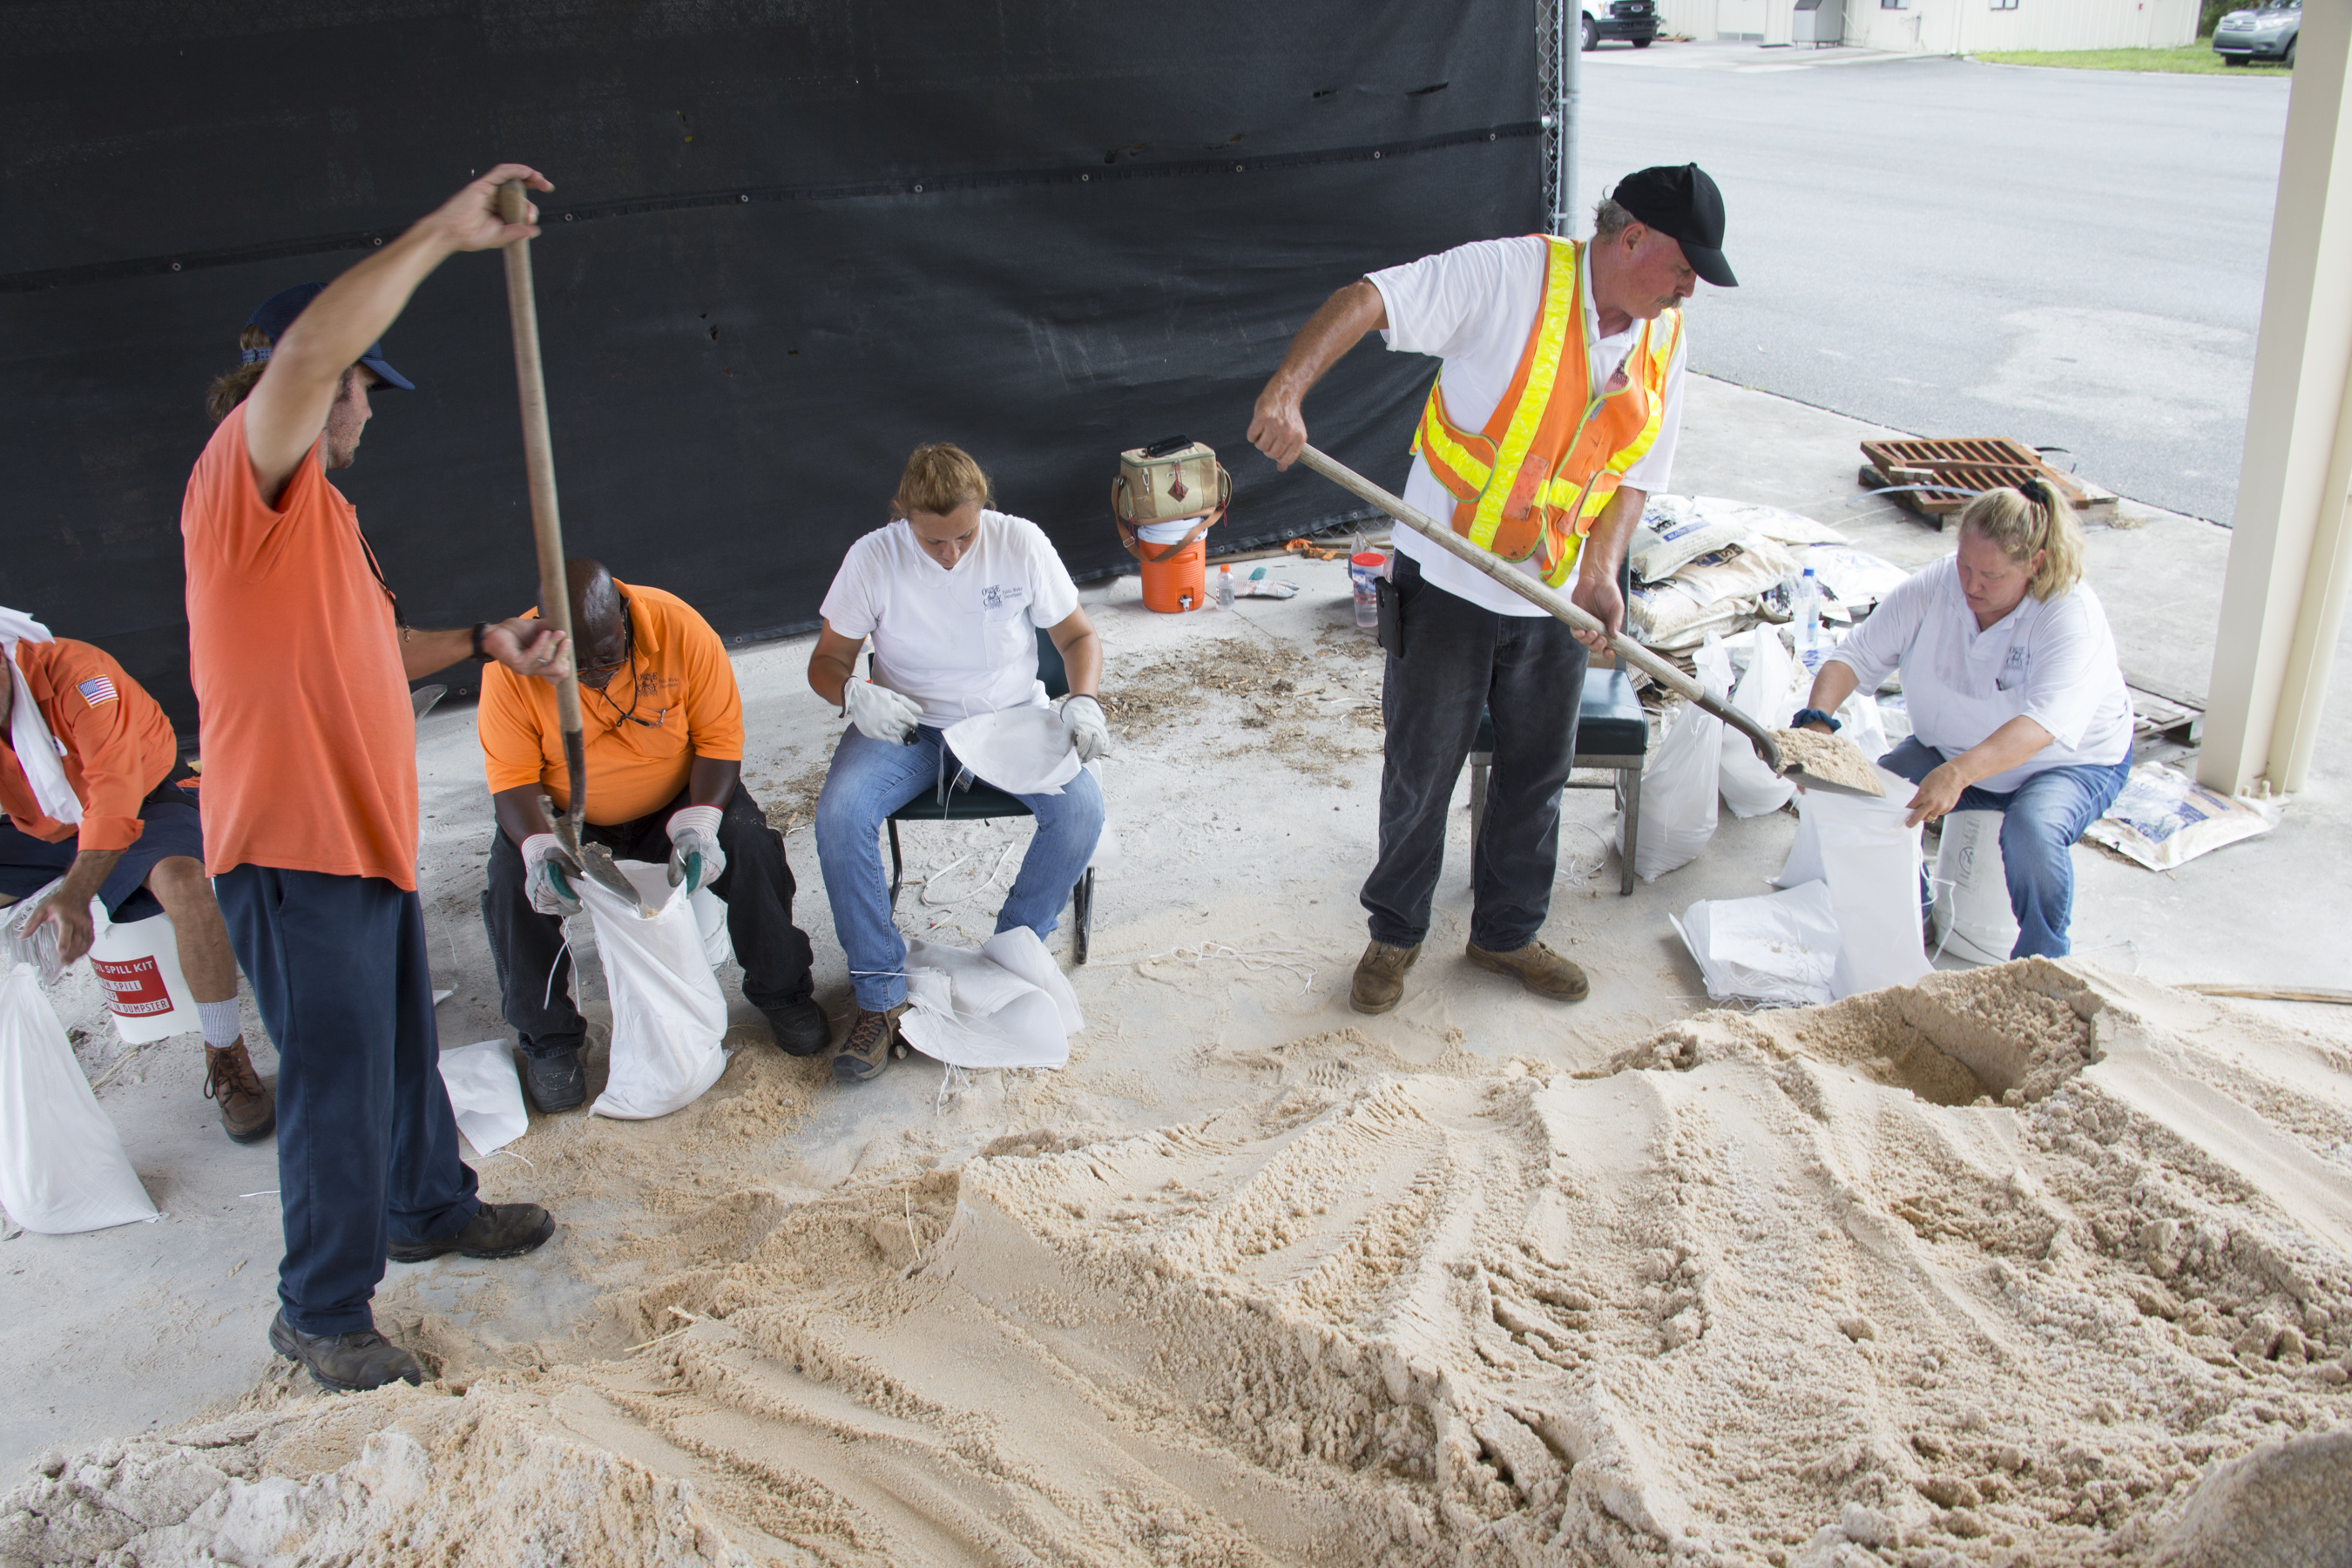 Men filling sandbags